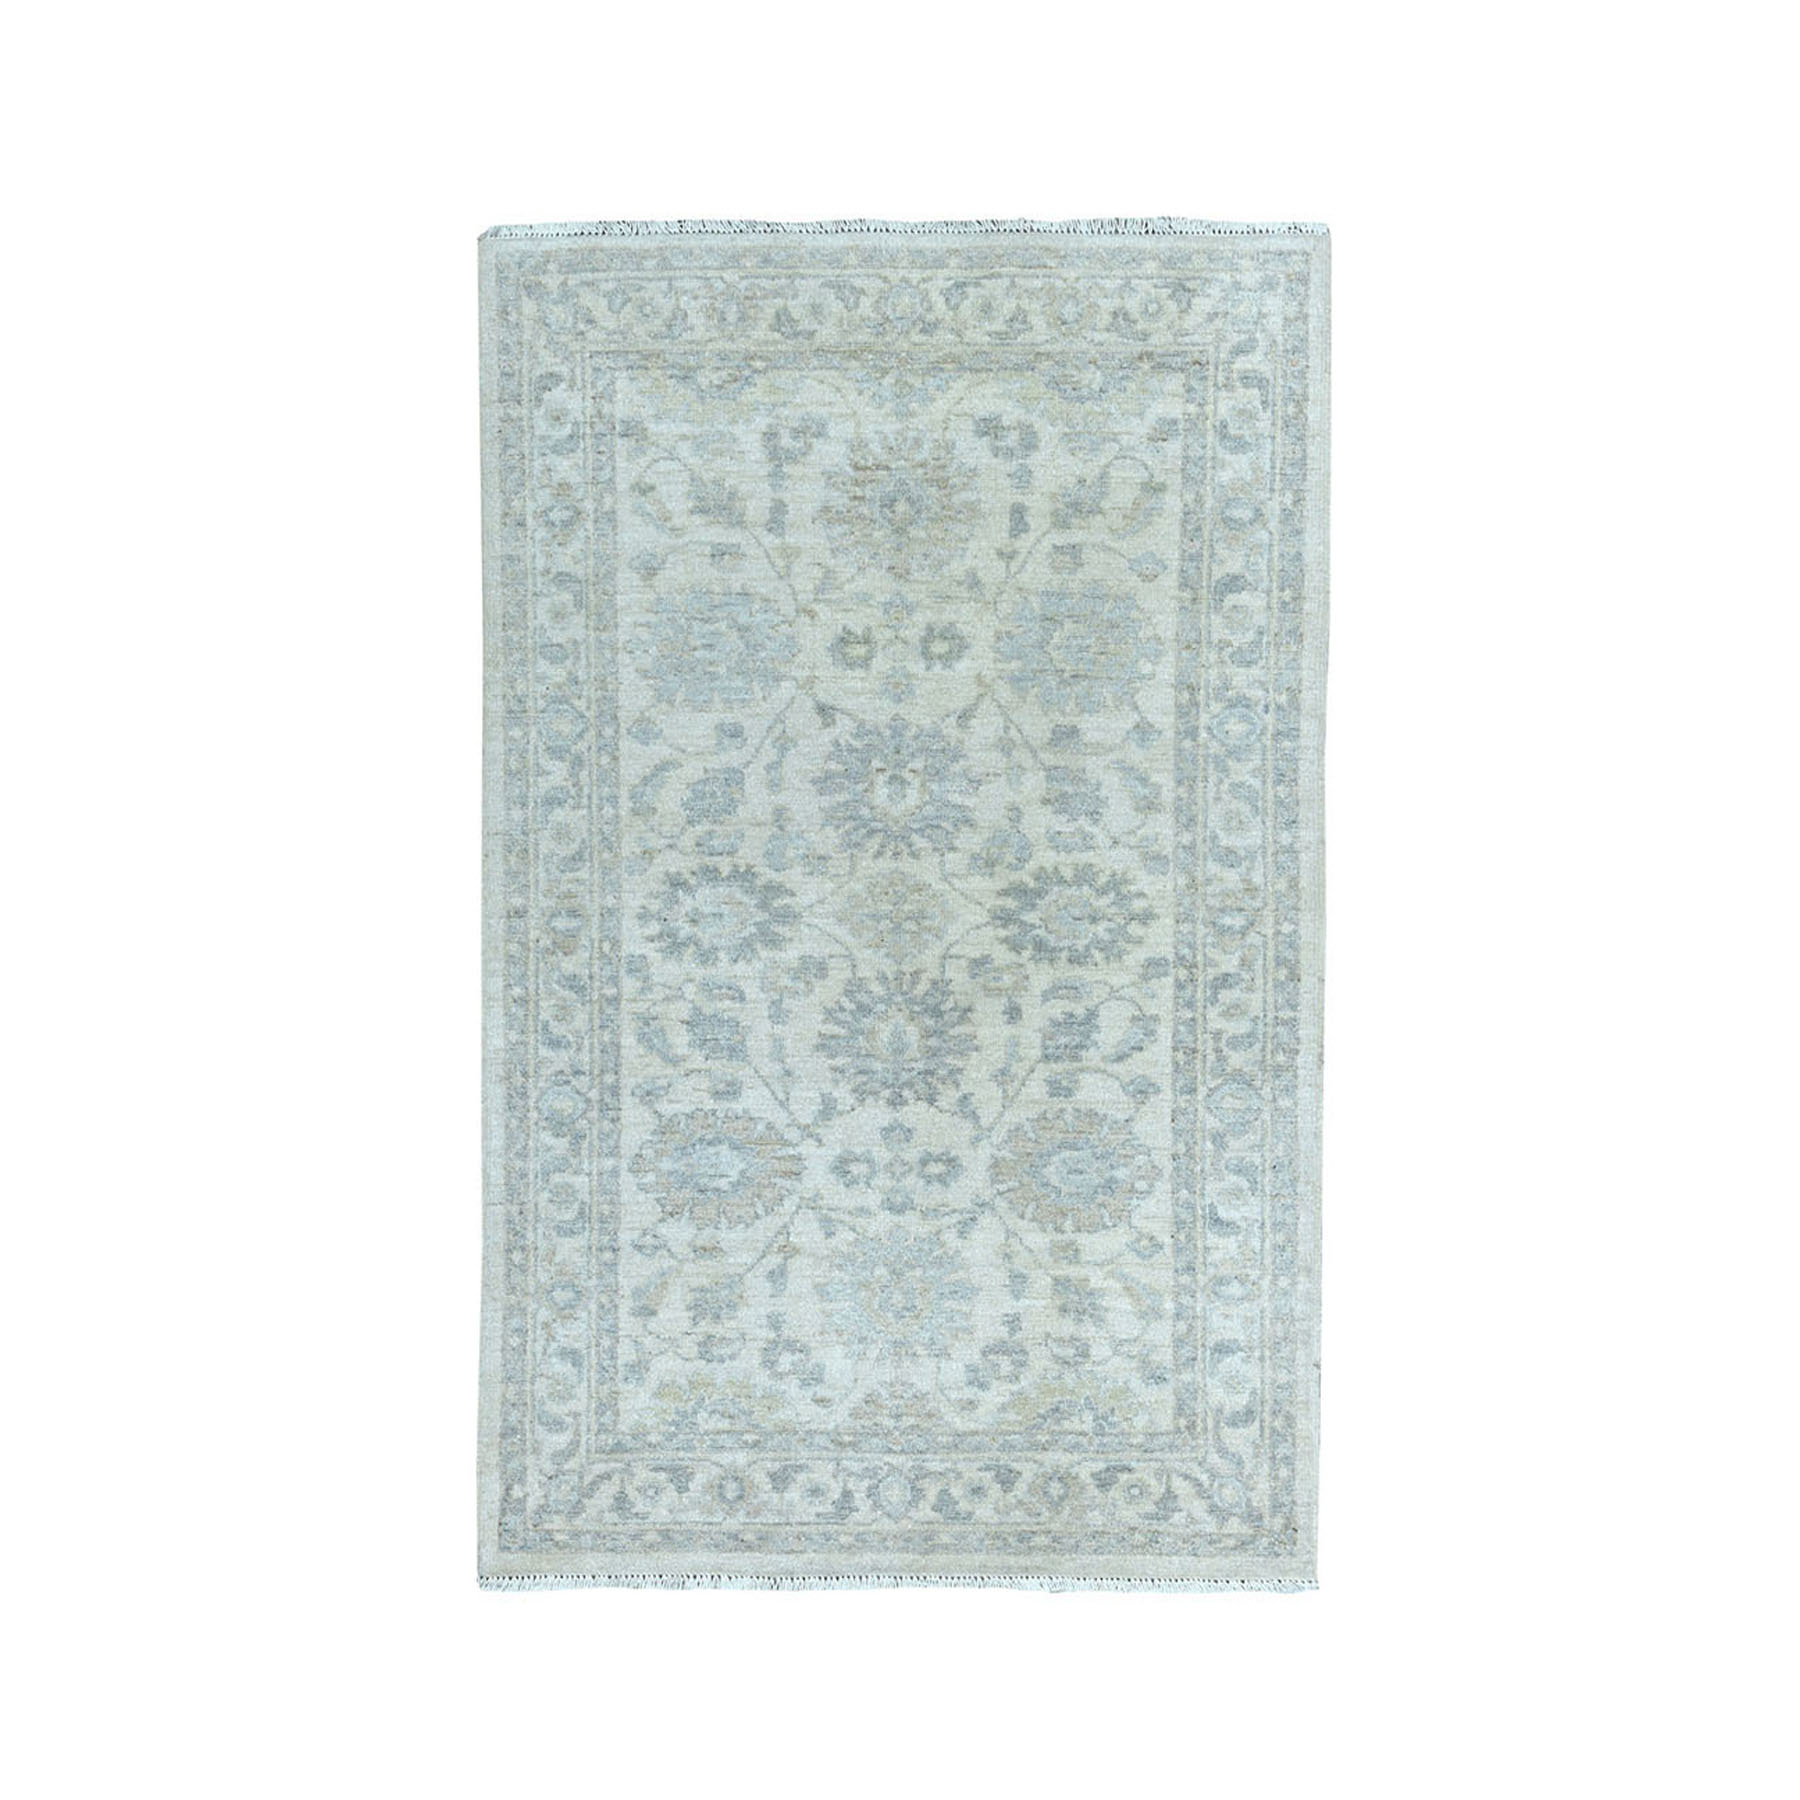 "3'X4'10"" White Wash Peshawar Pure Wool Hand-Knotted Oriental Rug moae0860"